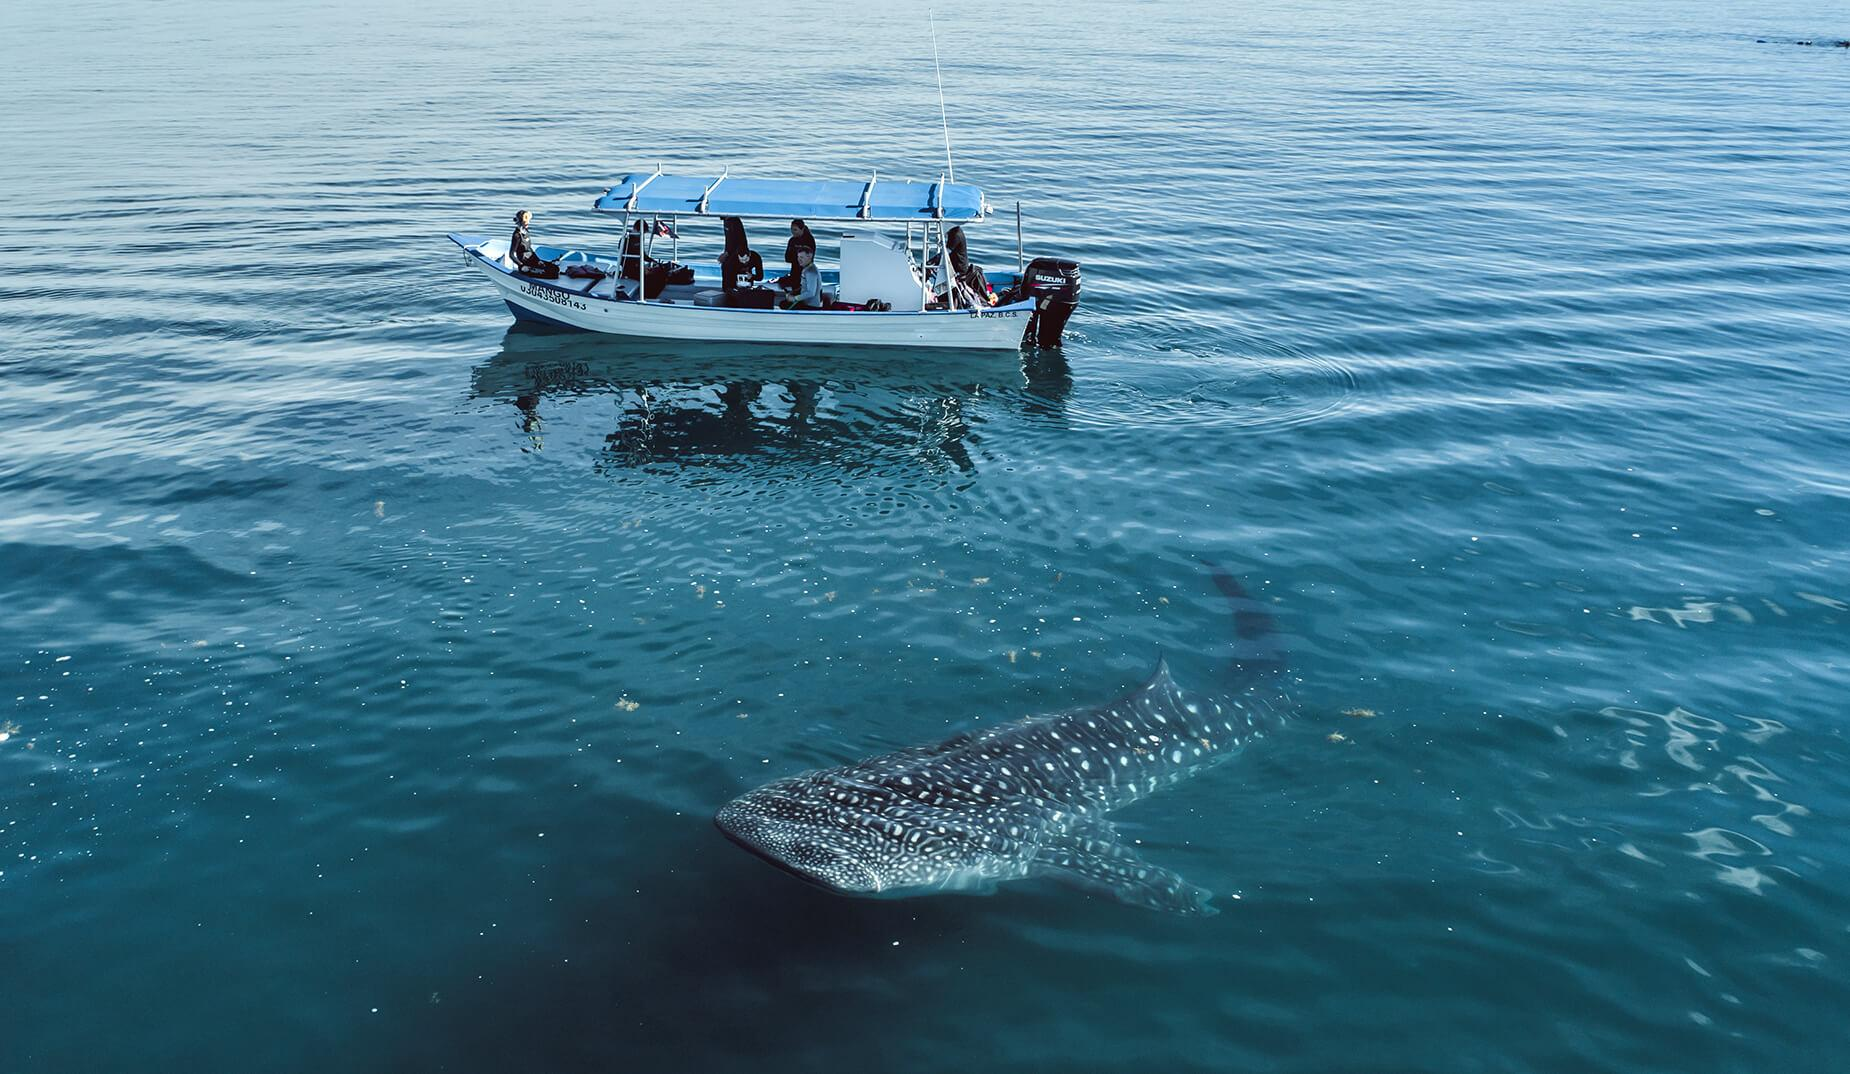 Whale sharks feed in the waters off of La Paz, Mexico. © Slater Moore